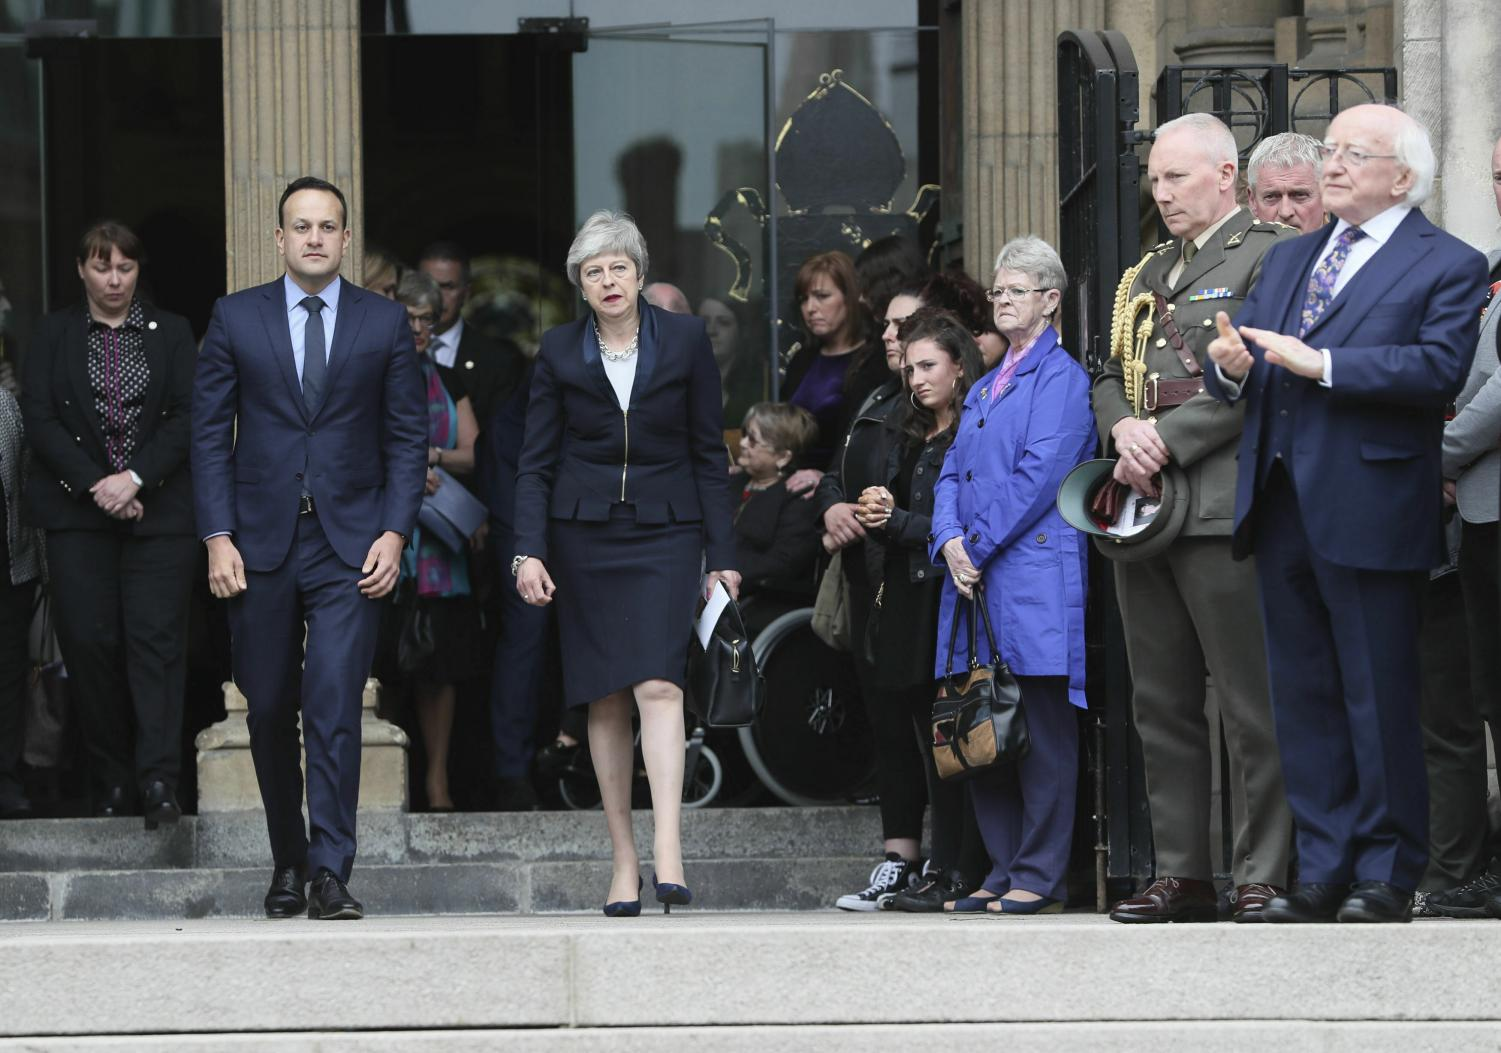 Britain's Prime Minister Theresa May, centre and Ireland Prime Minister Leo Varadkar leave after the funeral service of journalist Lyra McKee, at St Anne's Cathedral in Belfast, northern Ireland, Wednesday April 24, 2019. The leaders of Britain and Ireland joined hundreds of mourners Wednesday at the funeral of Lyra McKee, the young journalist shot dead during rioting in Northern Ireland last week.